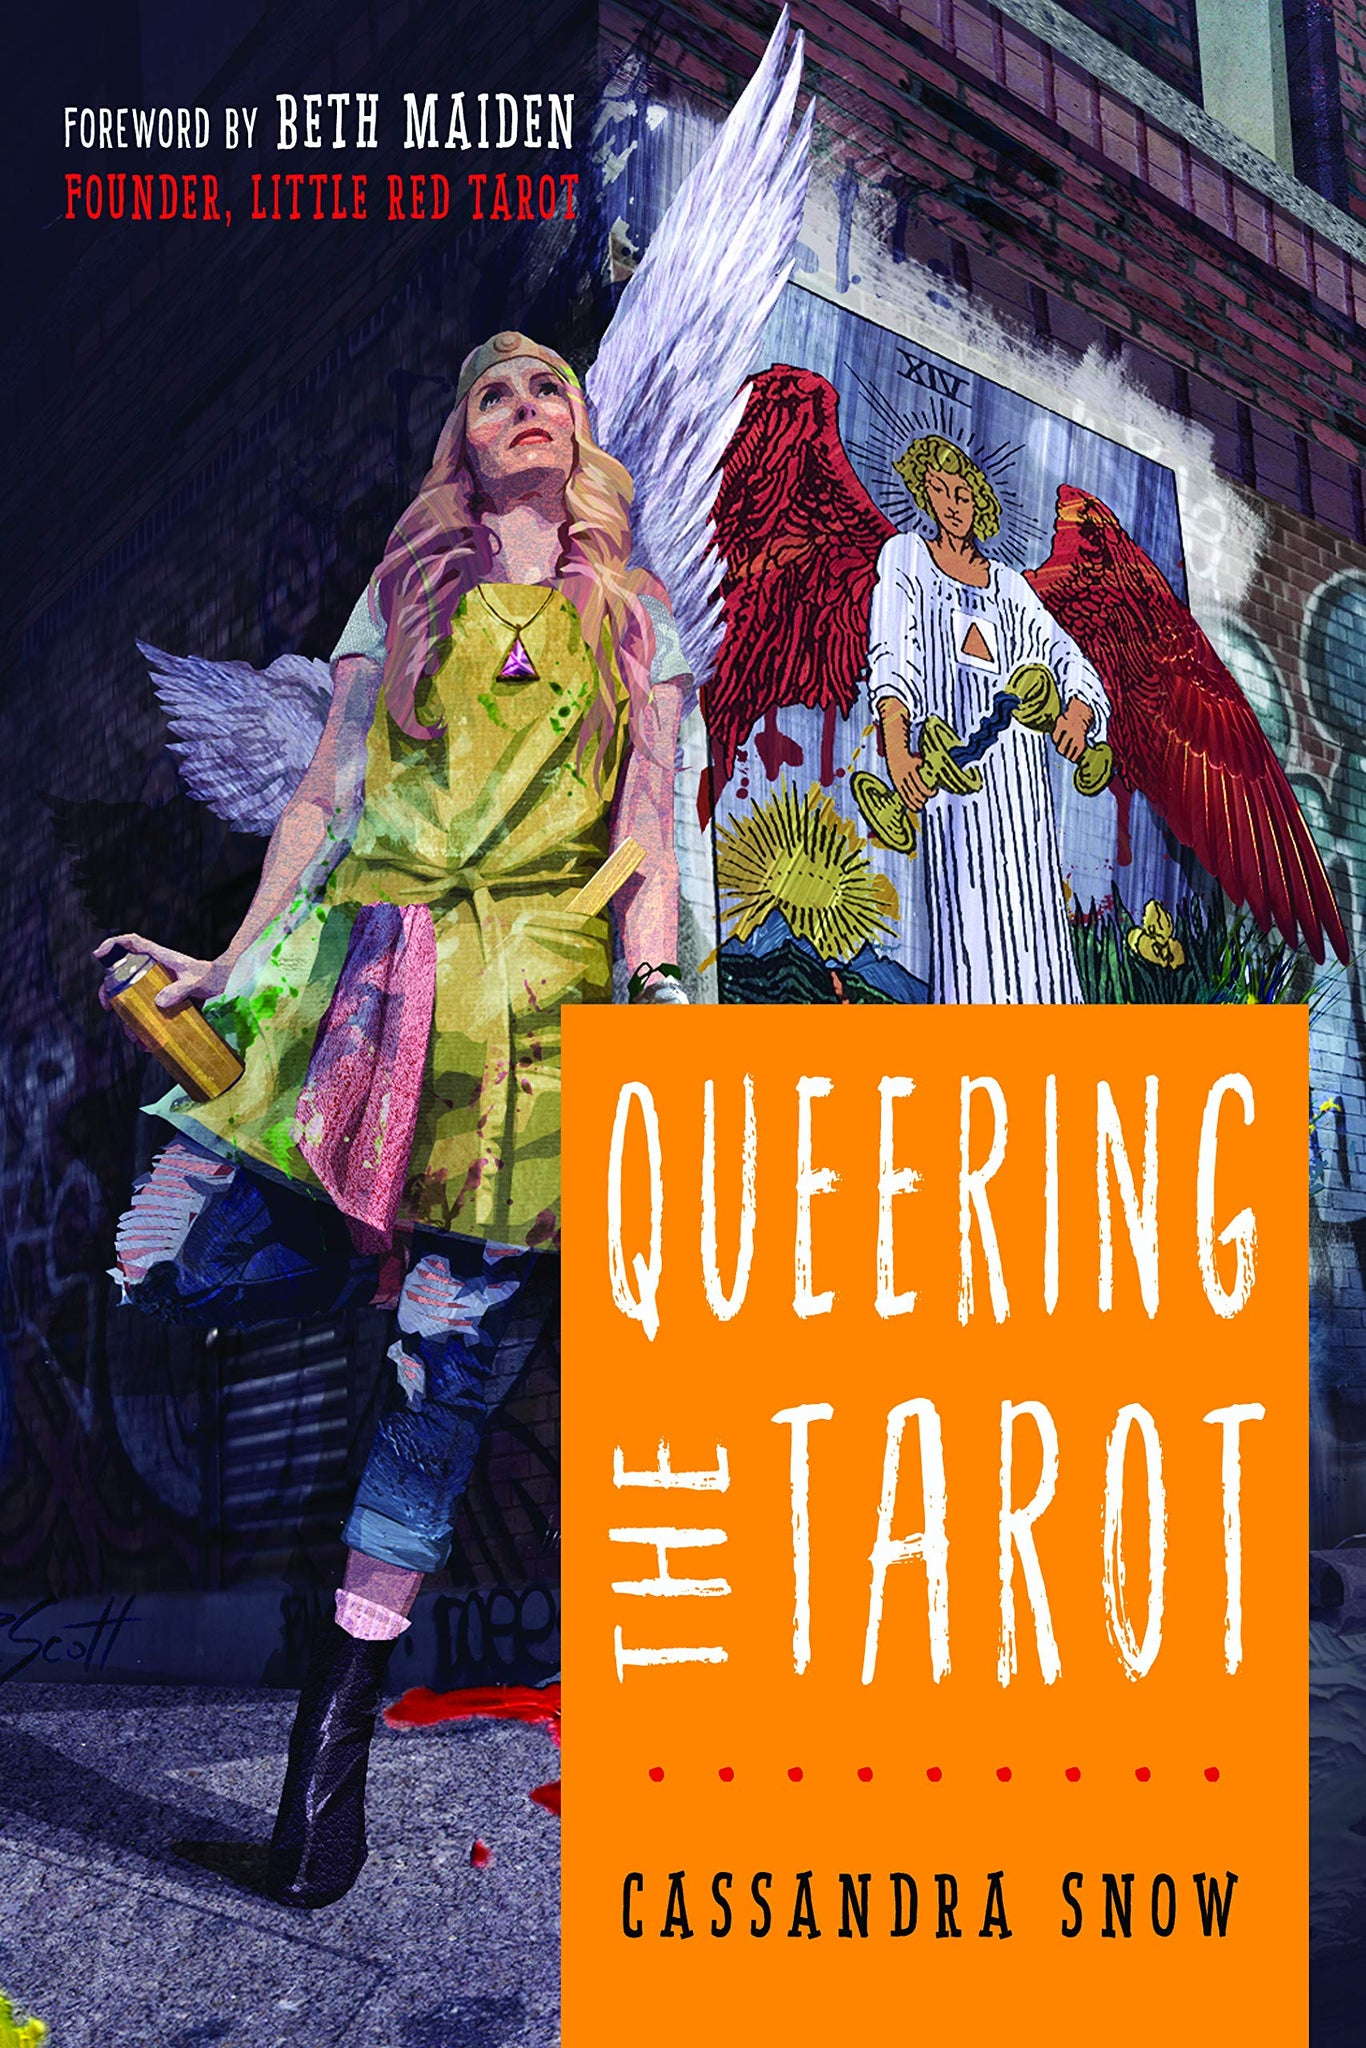 Queering the Tarot by Cassandra Snow